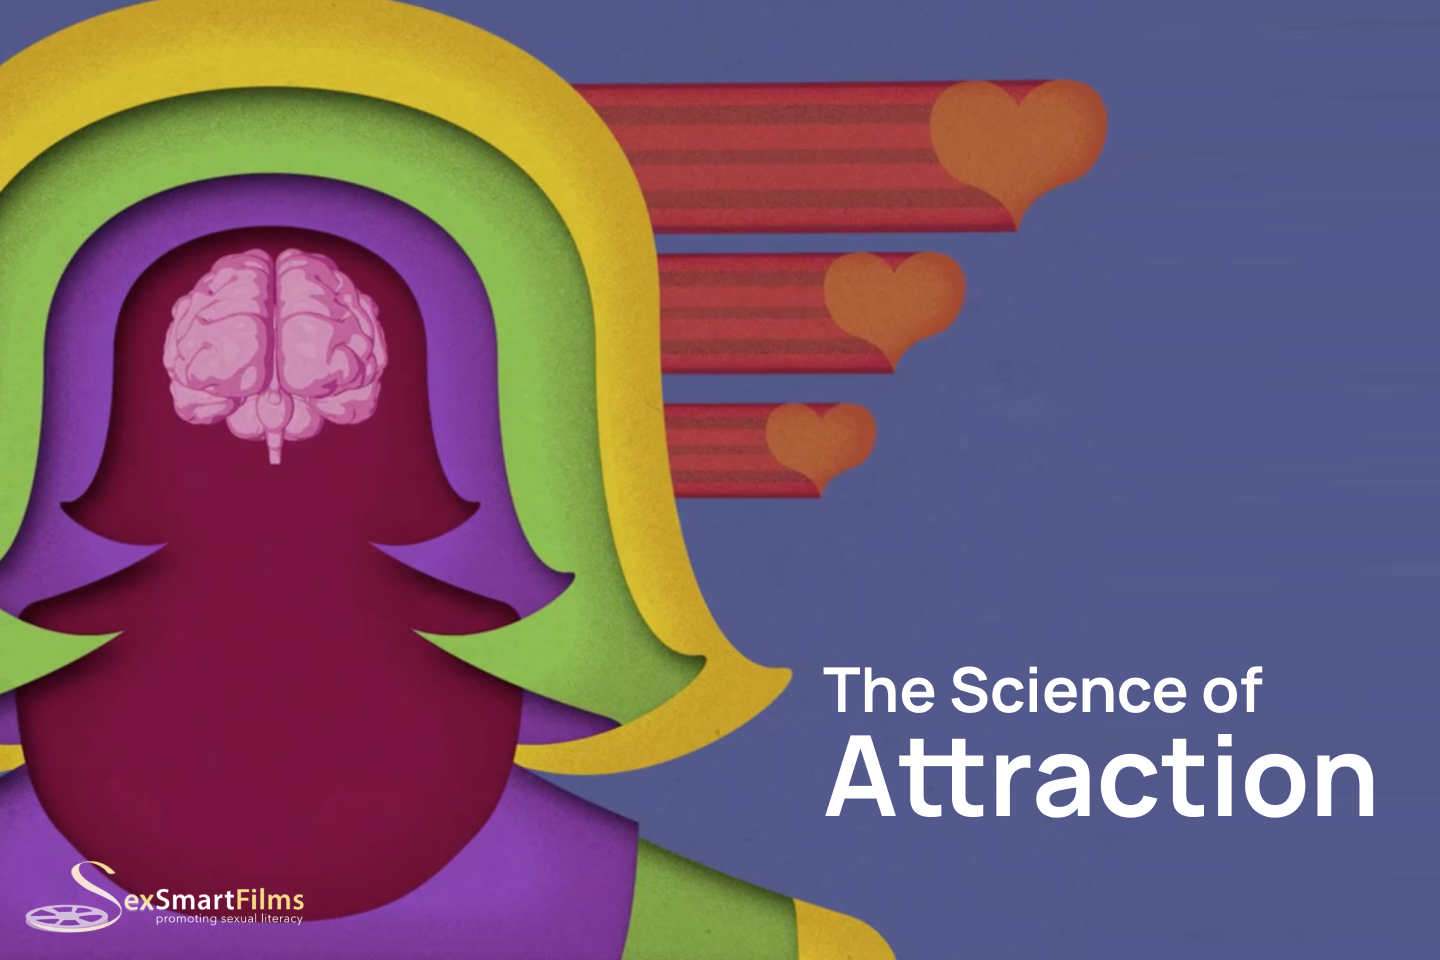 The Science of Attraction- A Film by Dawn Maslar